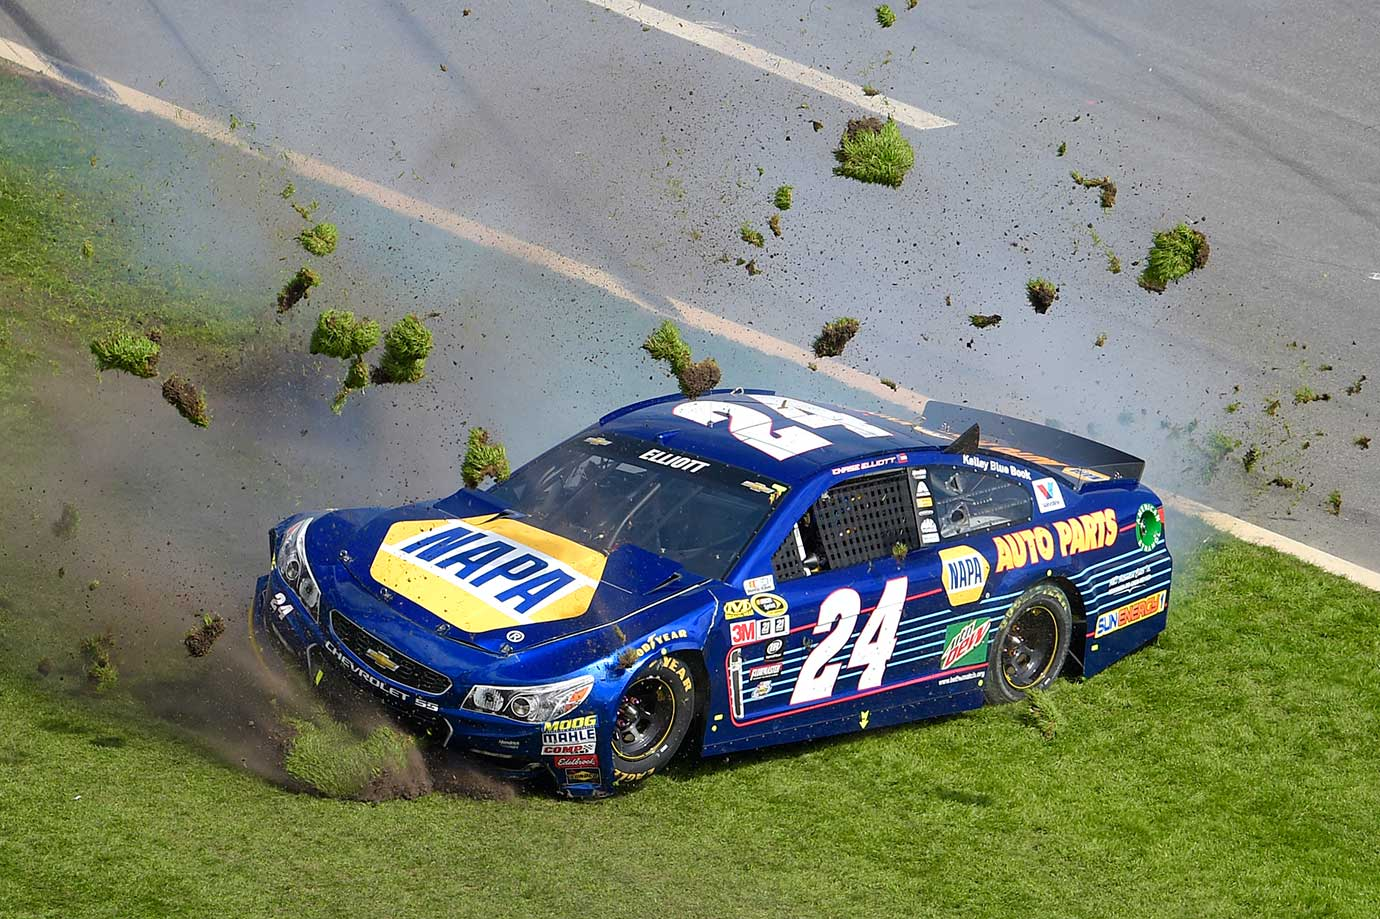 Chase Elliott spins in the grass of the front stretch during the Daytona 500 Sprint Cup series race at Daytona International Speedway in Daytona Beach, Fla.